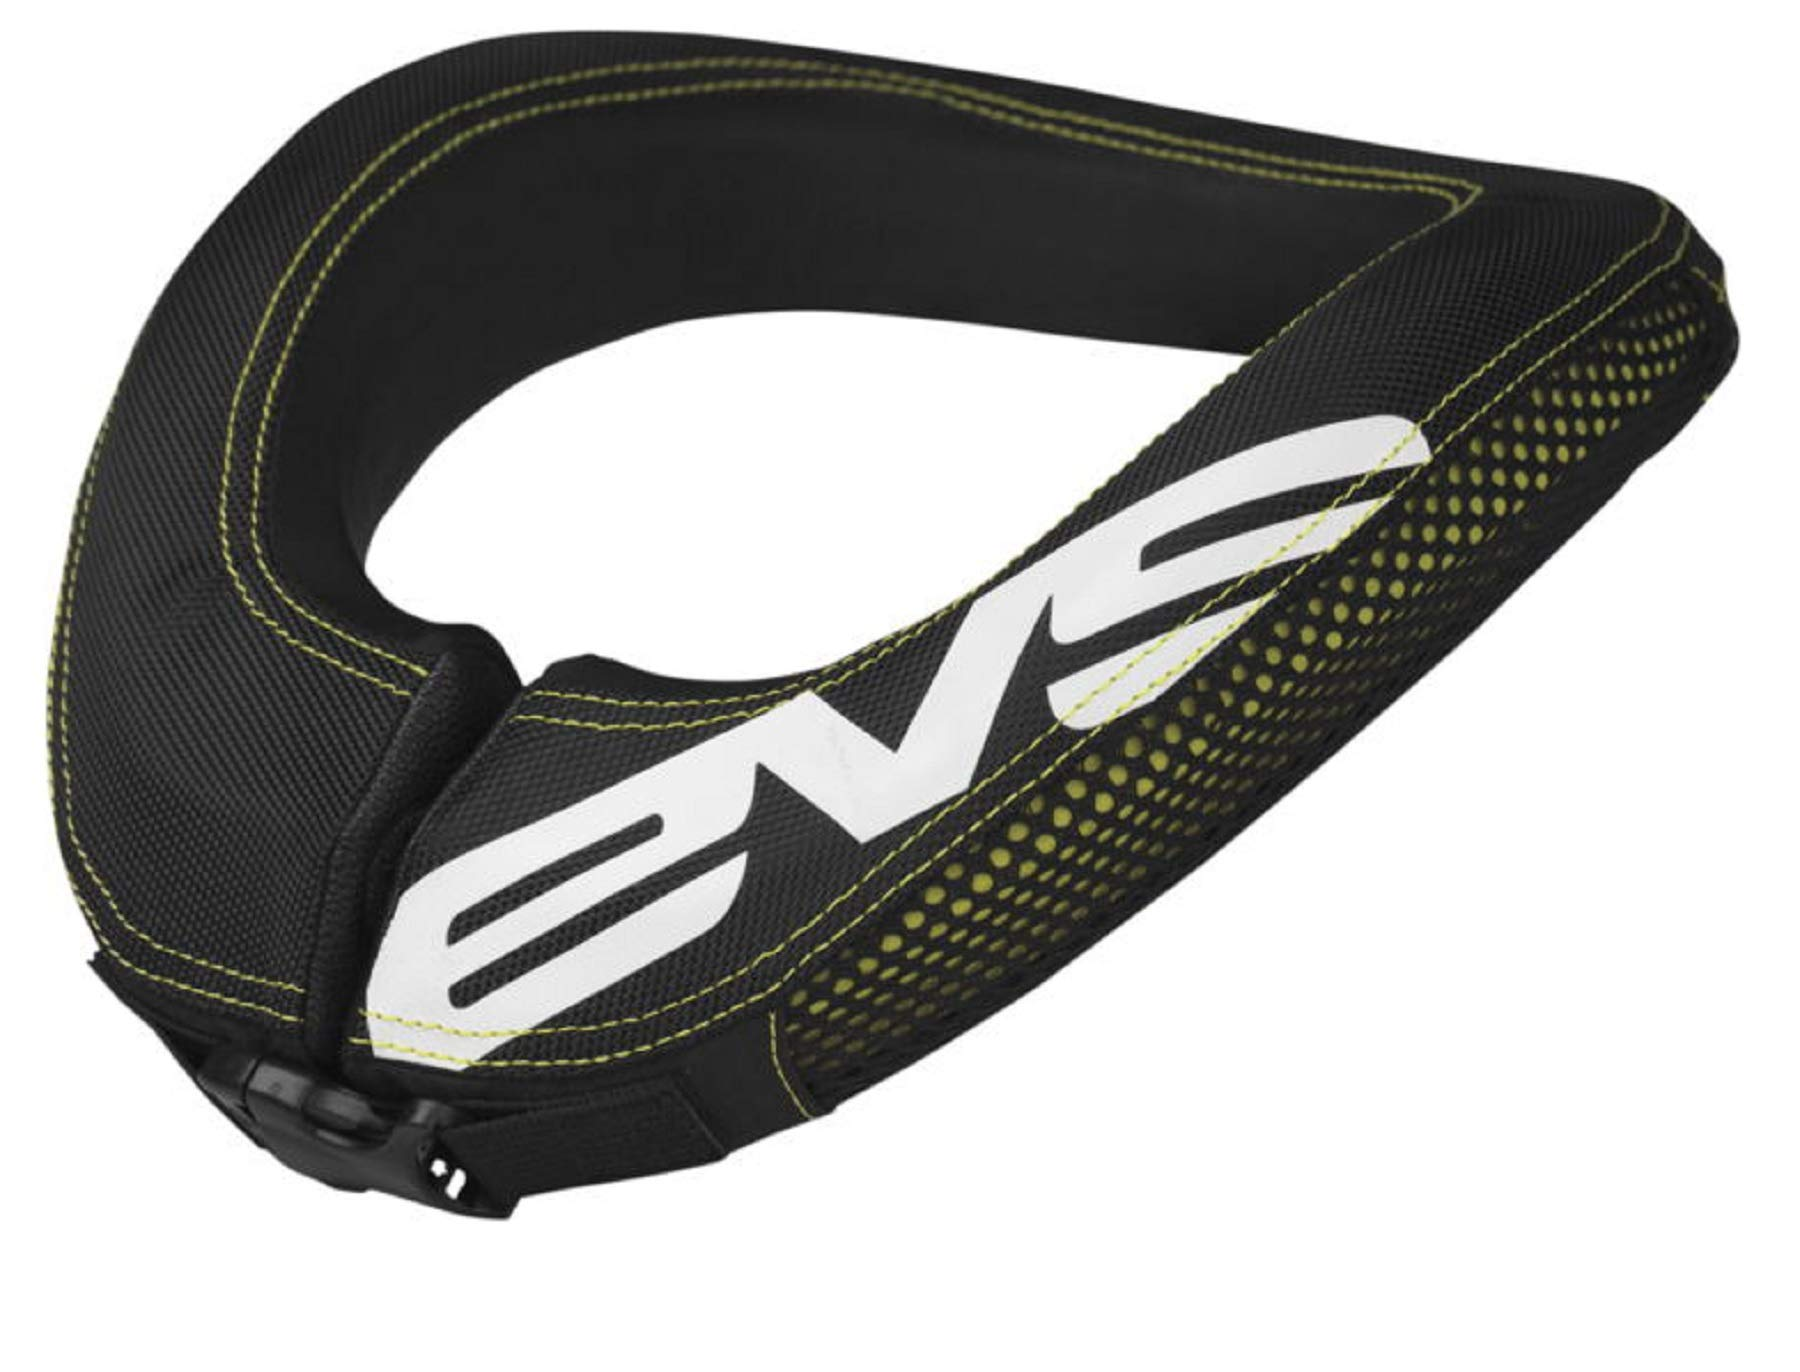 EVS RC2 Adult Race Collar MX Motorcycle Body Armor - Black / One Size